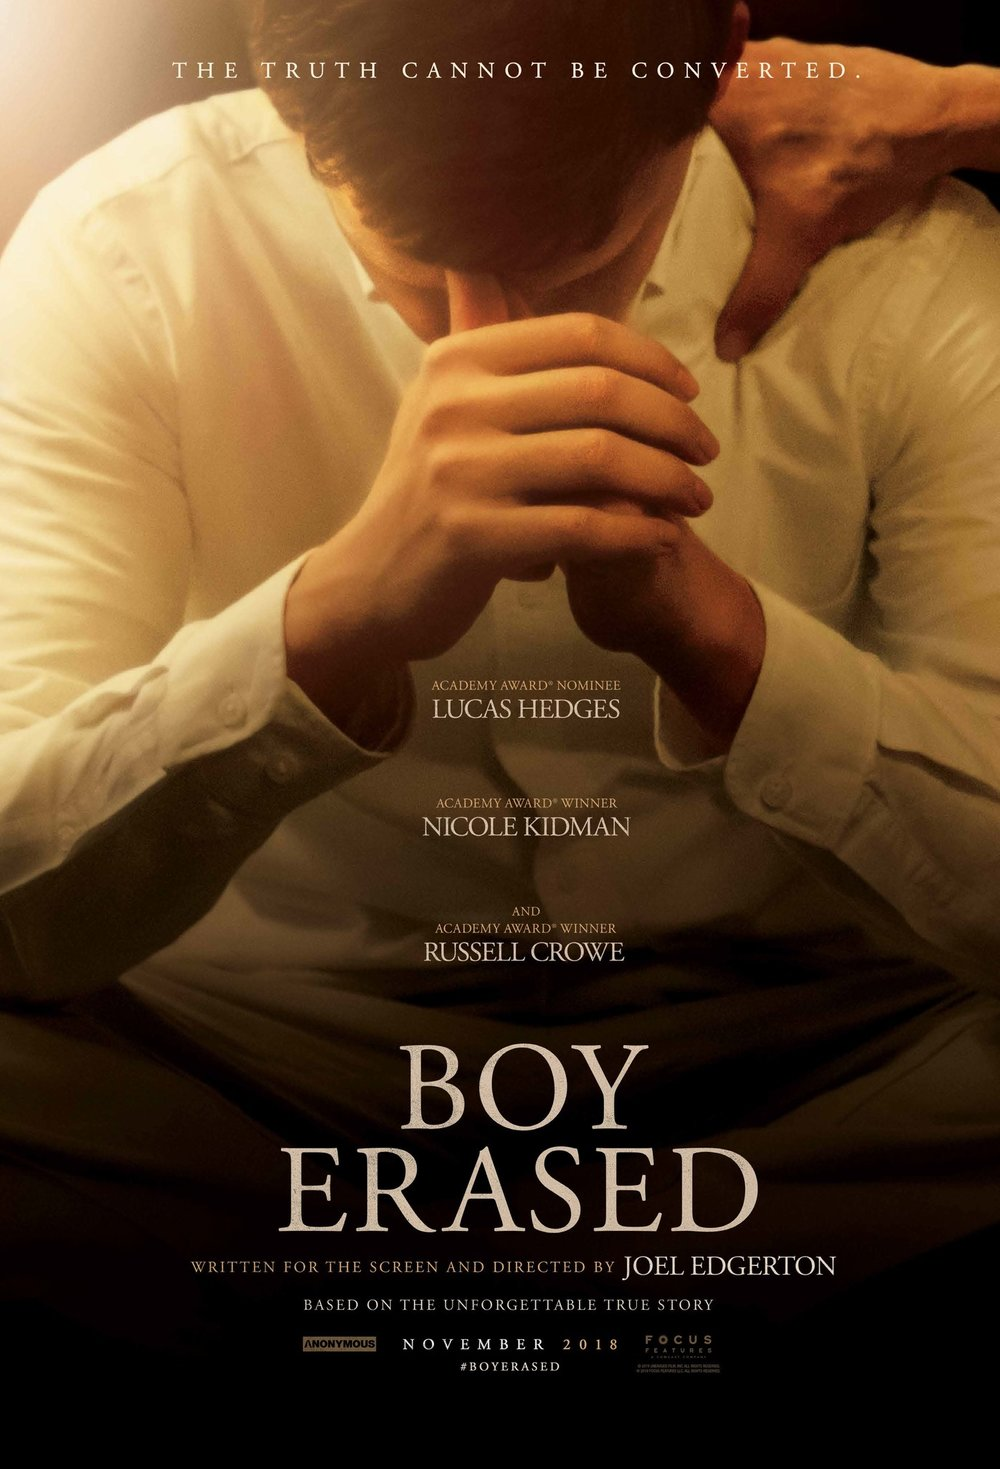 boy erased movie poster.jpg